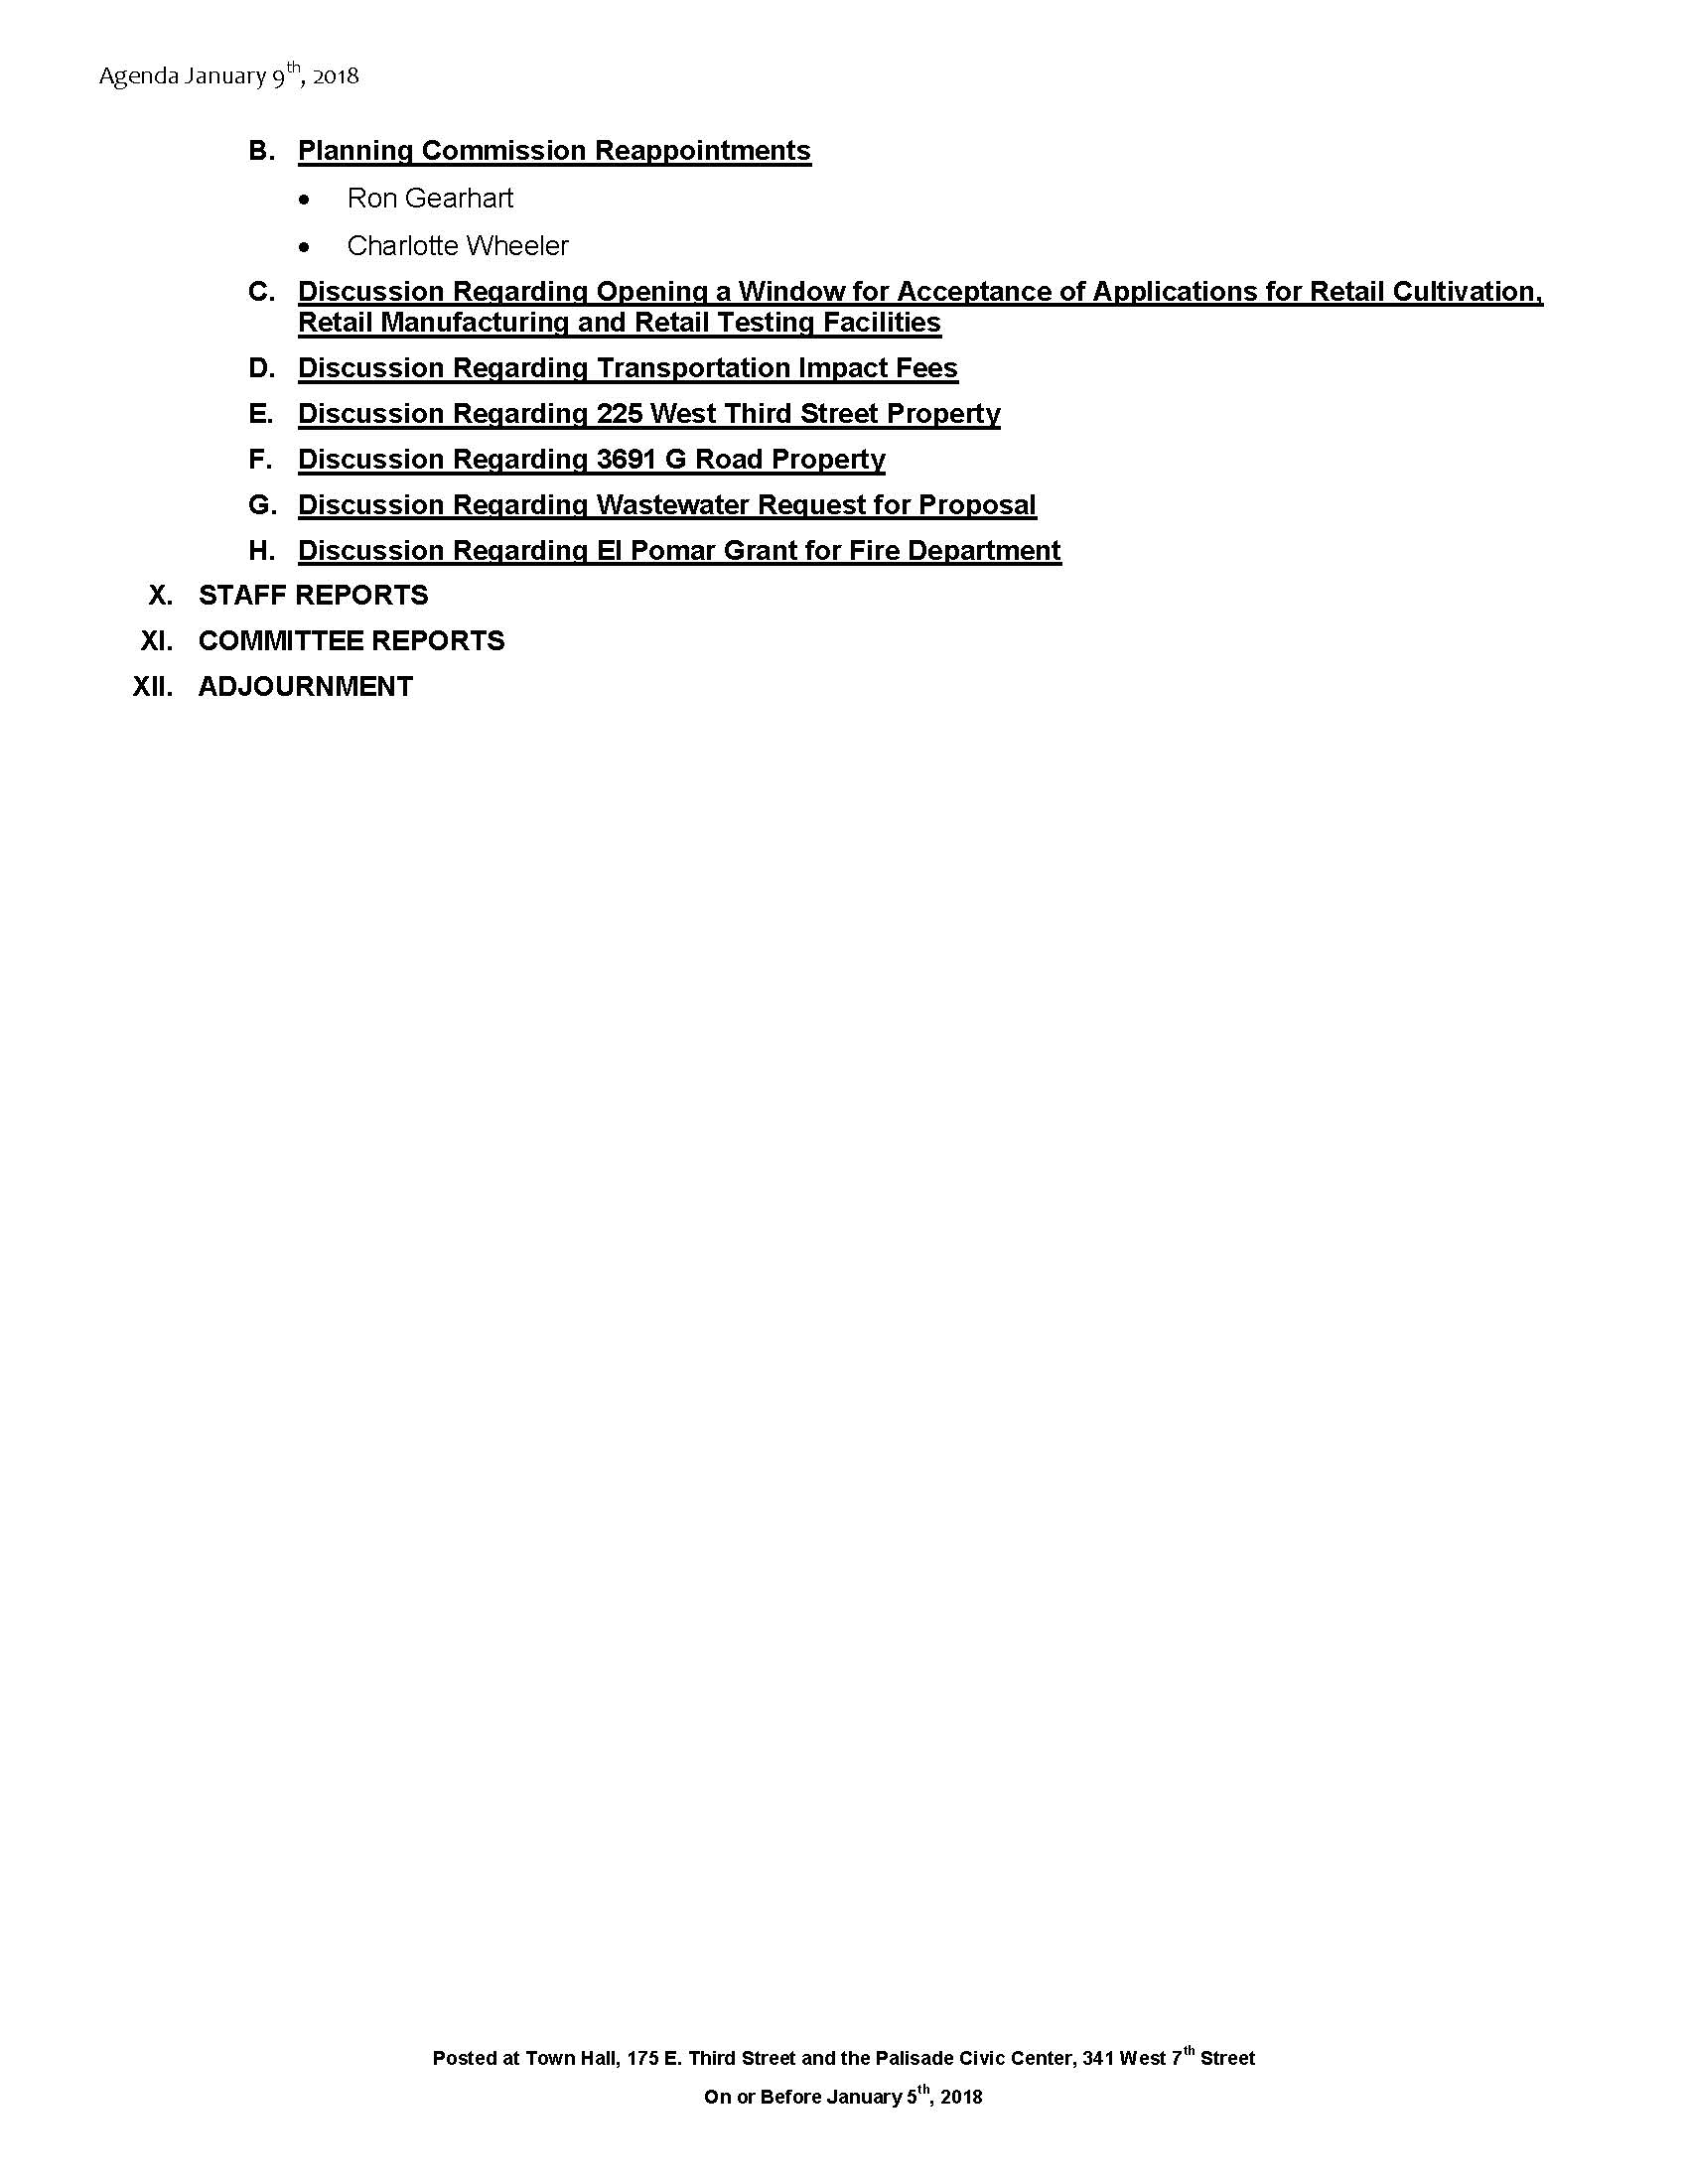 January 9th 2018 Board Meeting Agenda Page 2